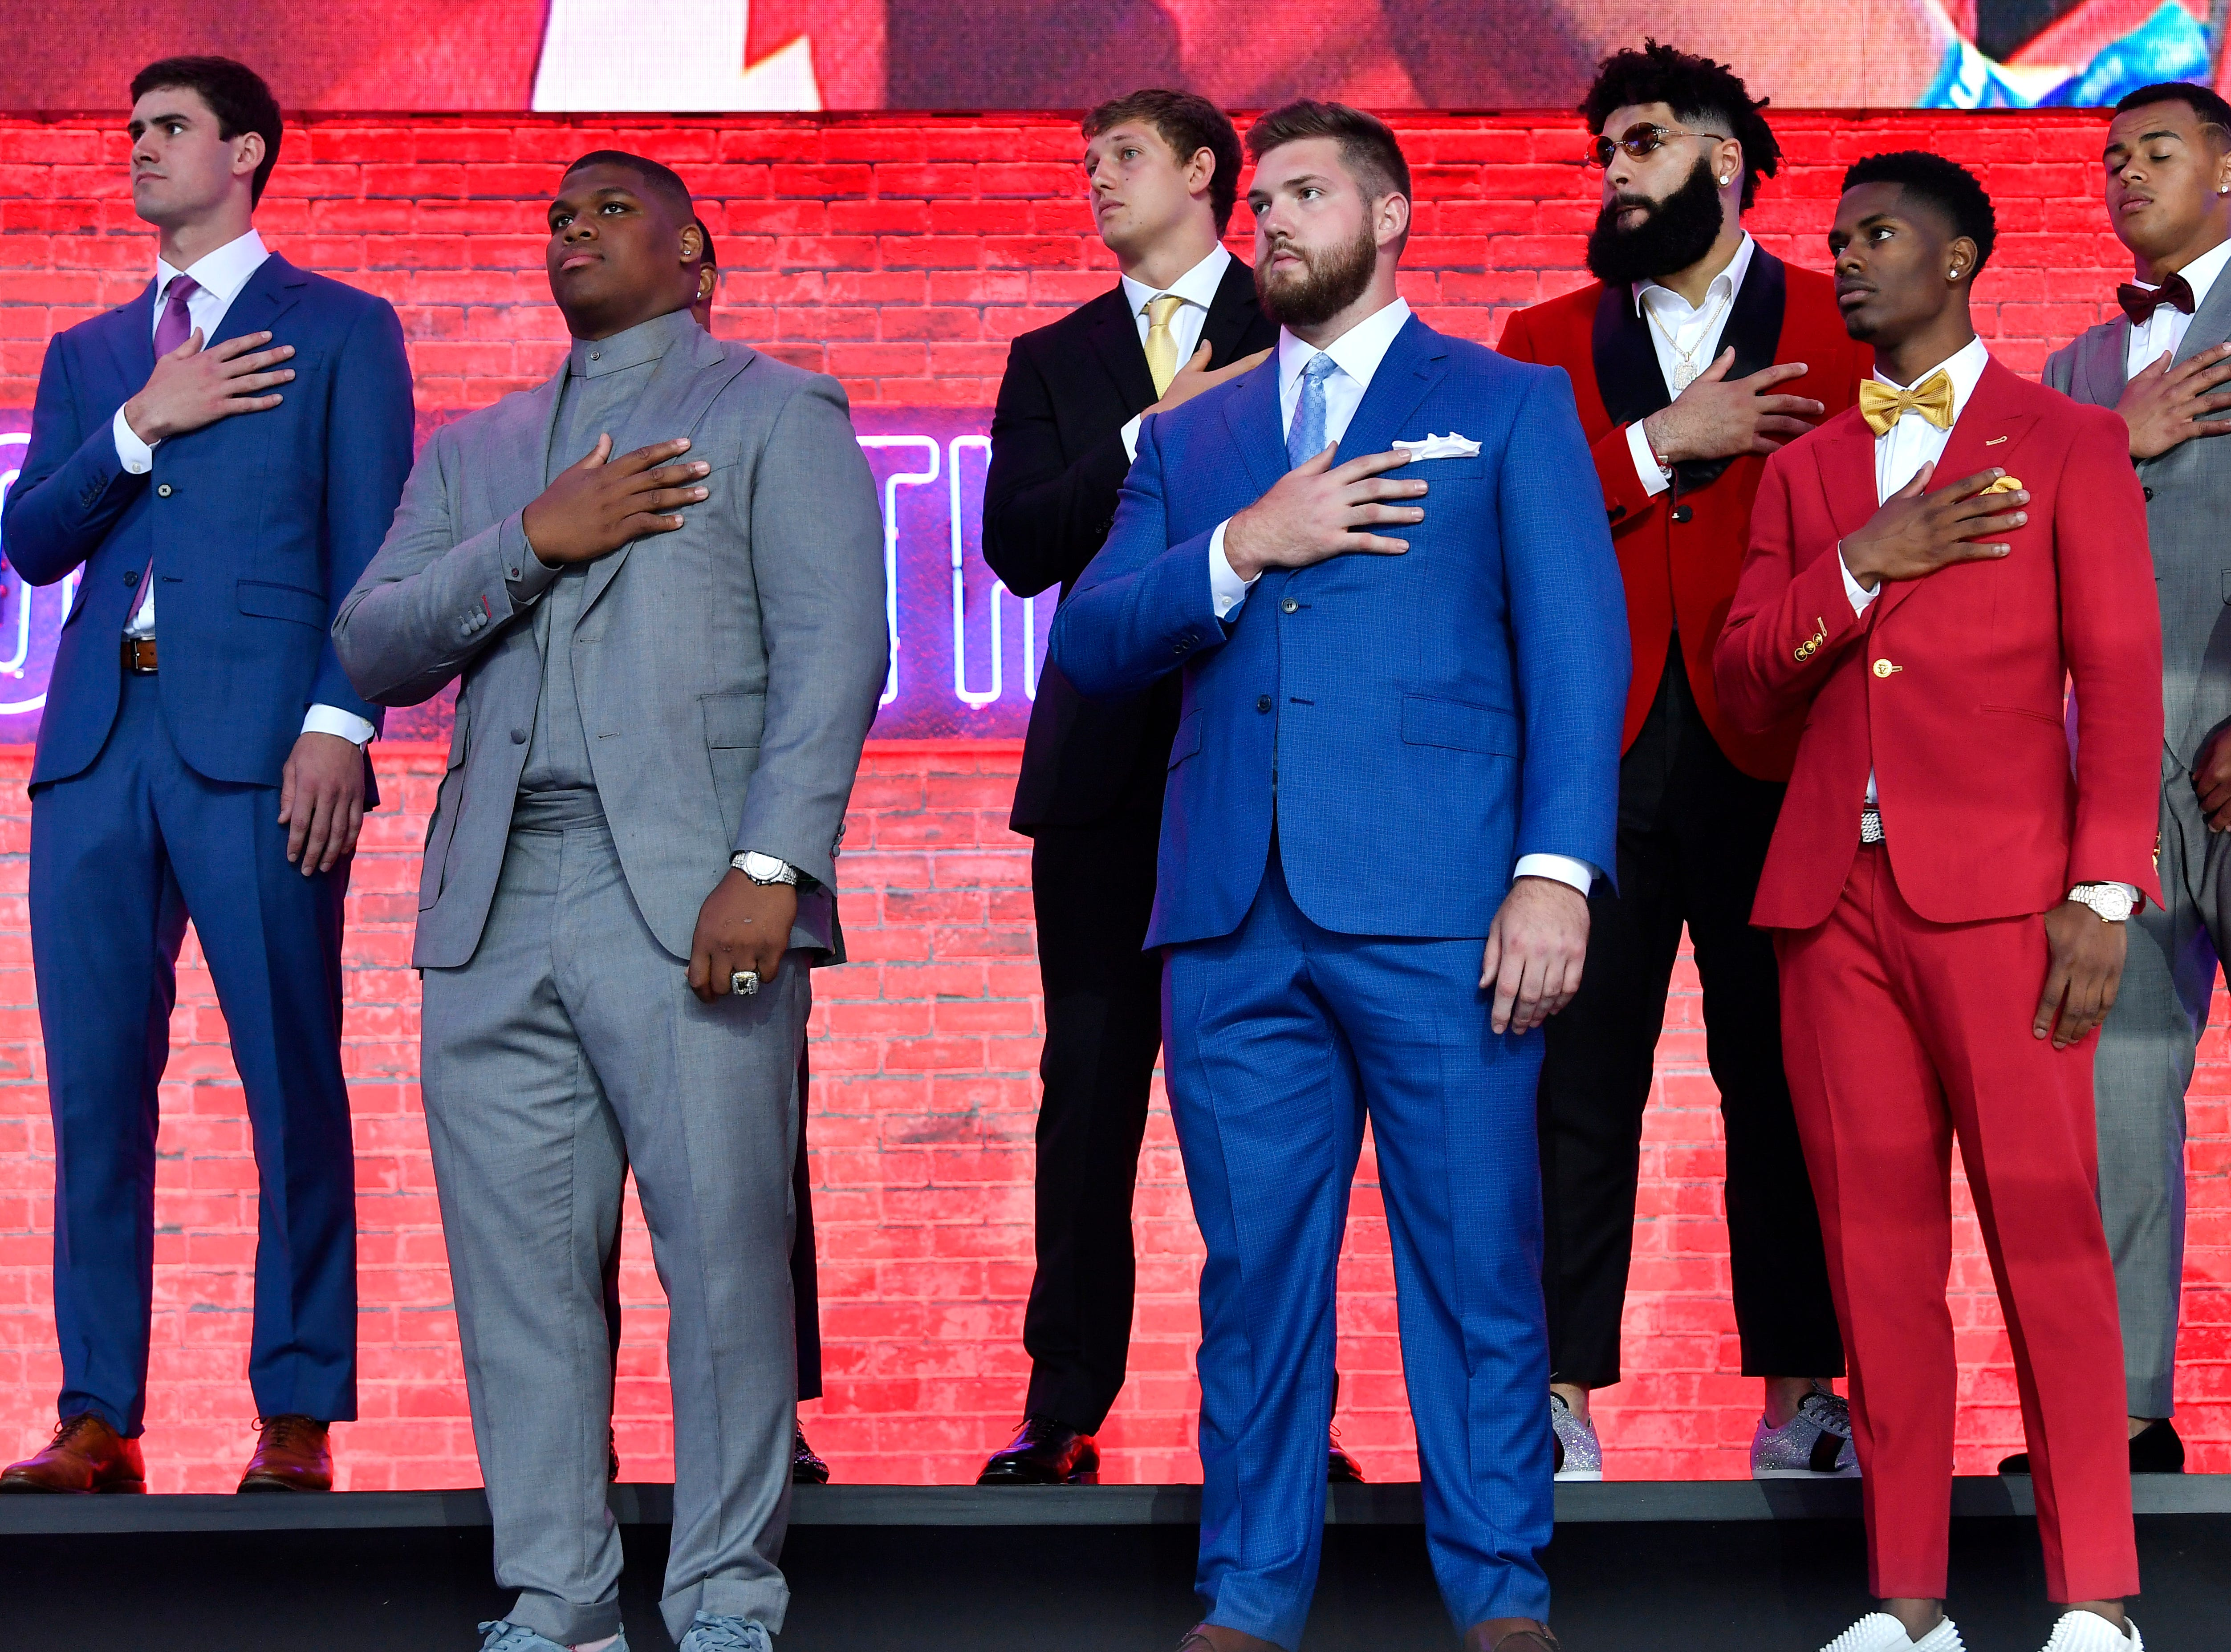 Some of the draft prospects stand for the National Anthem at the start of the first round of the NFL Draft Thursday, April 25, 2019, in Nashville, Tenn.